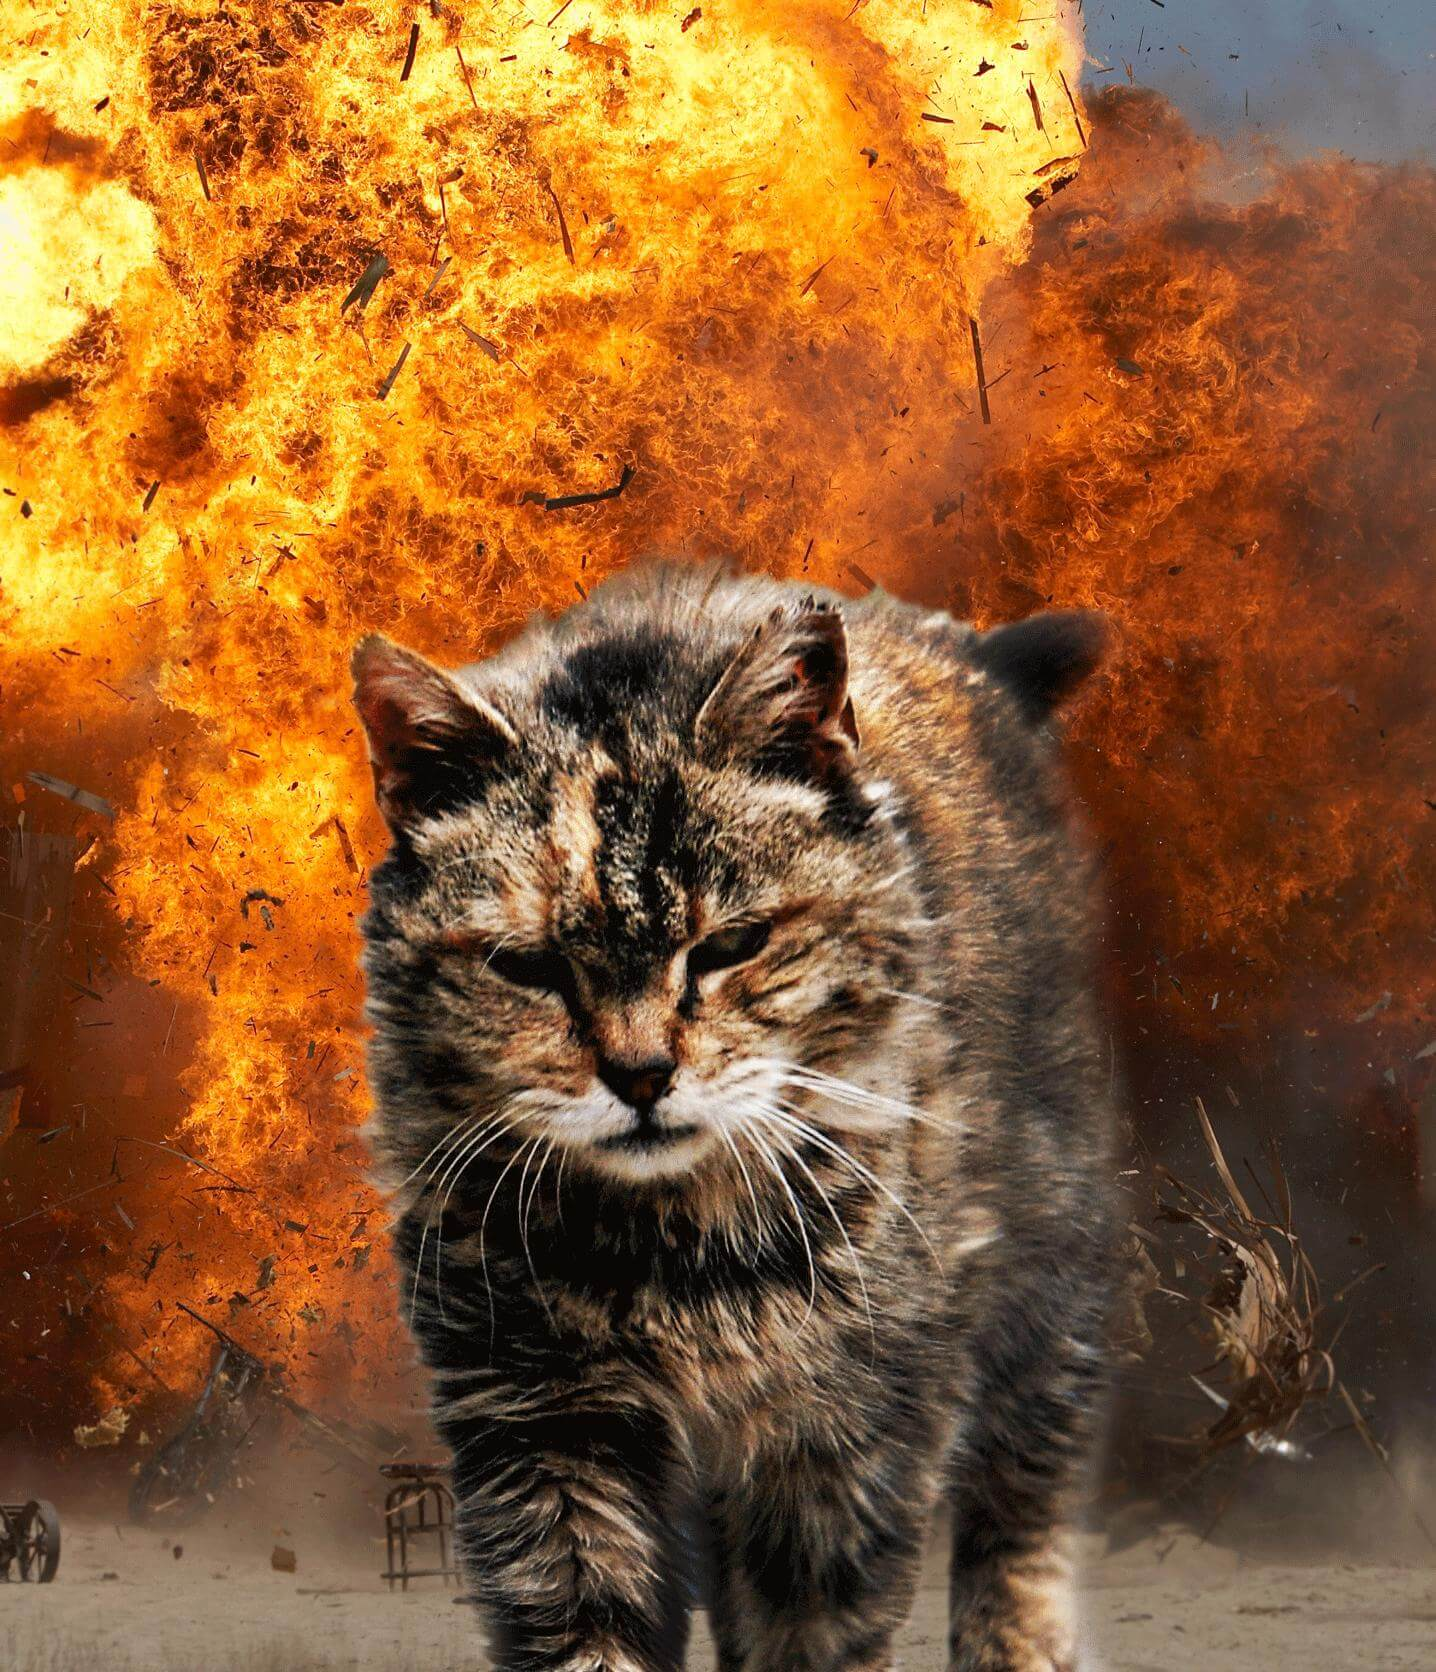 20 Cats Walking Away From Explosions As a Parody To Cool Guys Dont Look At Explosions